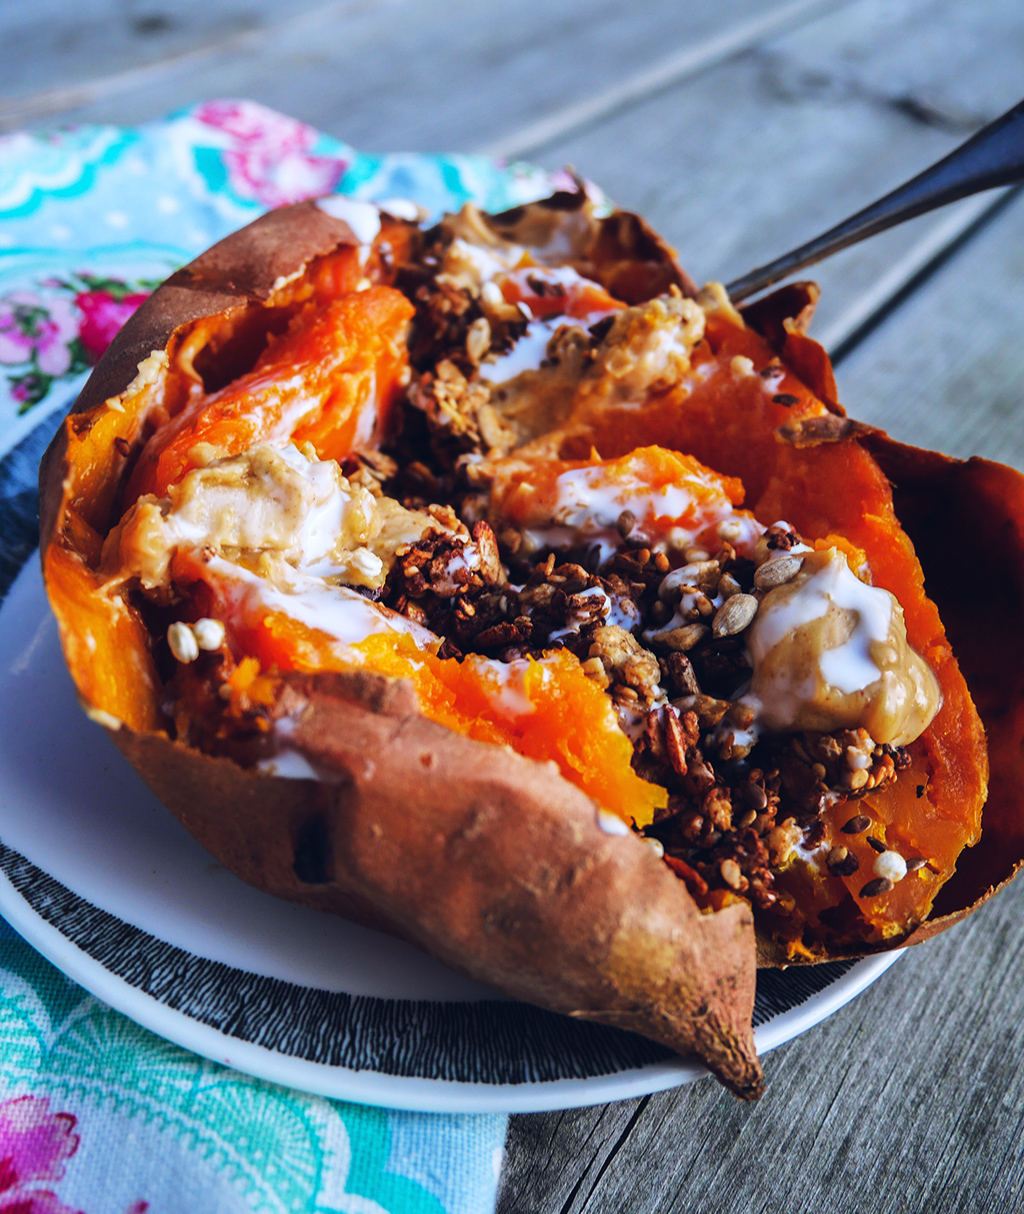 Baked Sweet Potato with Granola